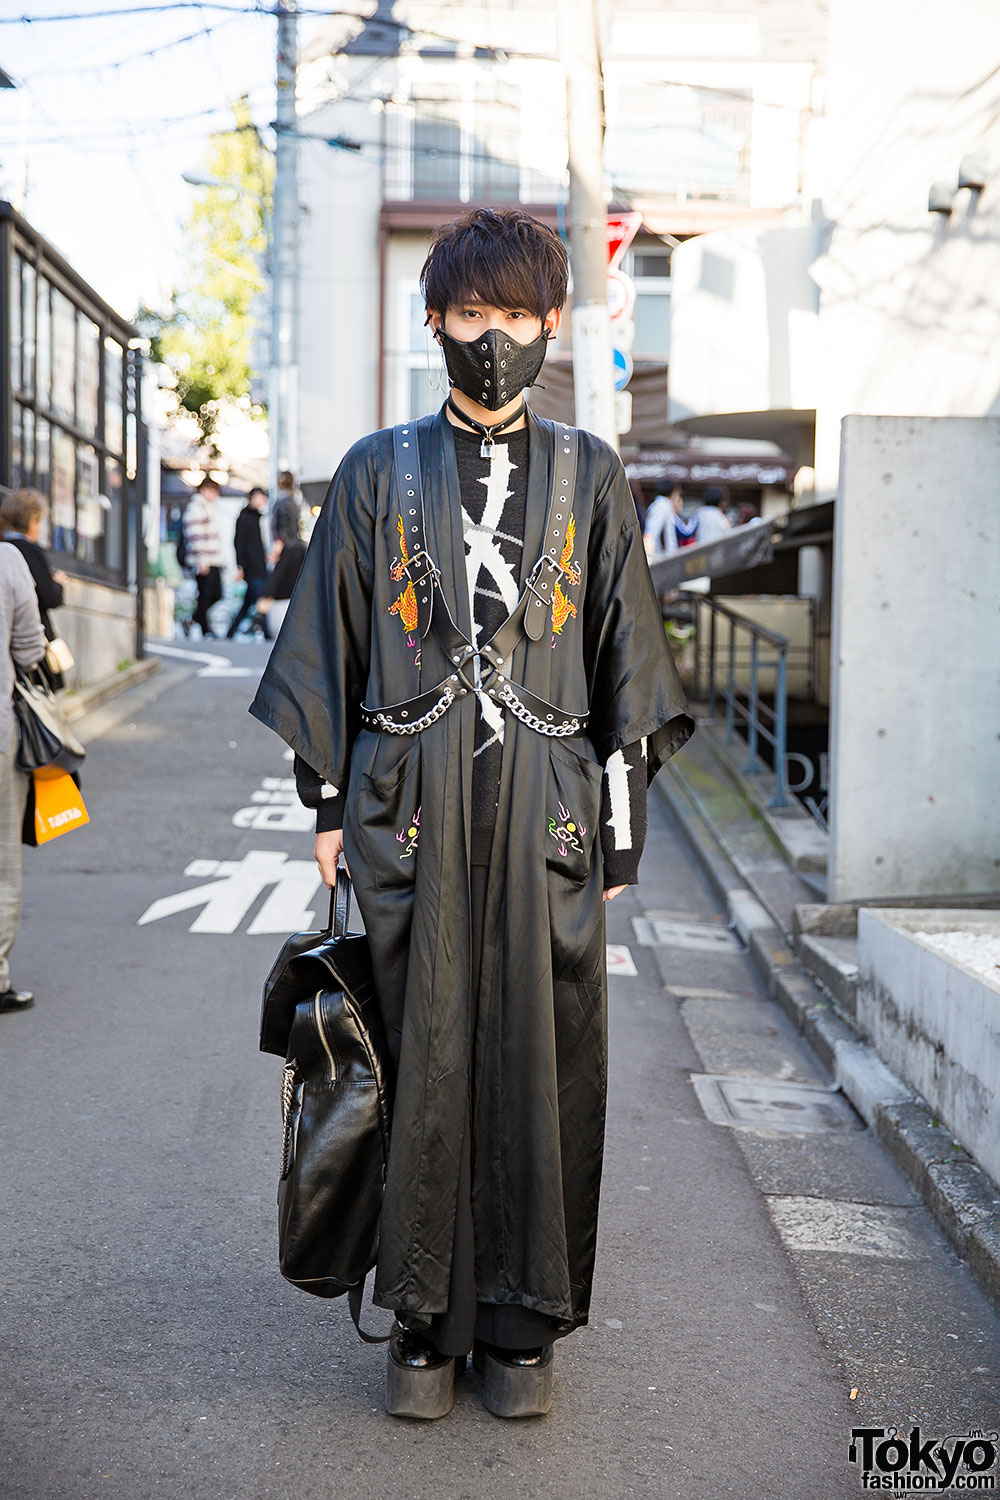 Tokyo Fashion 19 Year Old Japanese Fashion Students Gothmura And Ayaca On The Street In